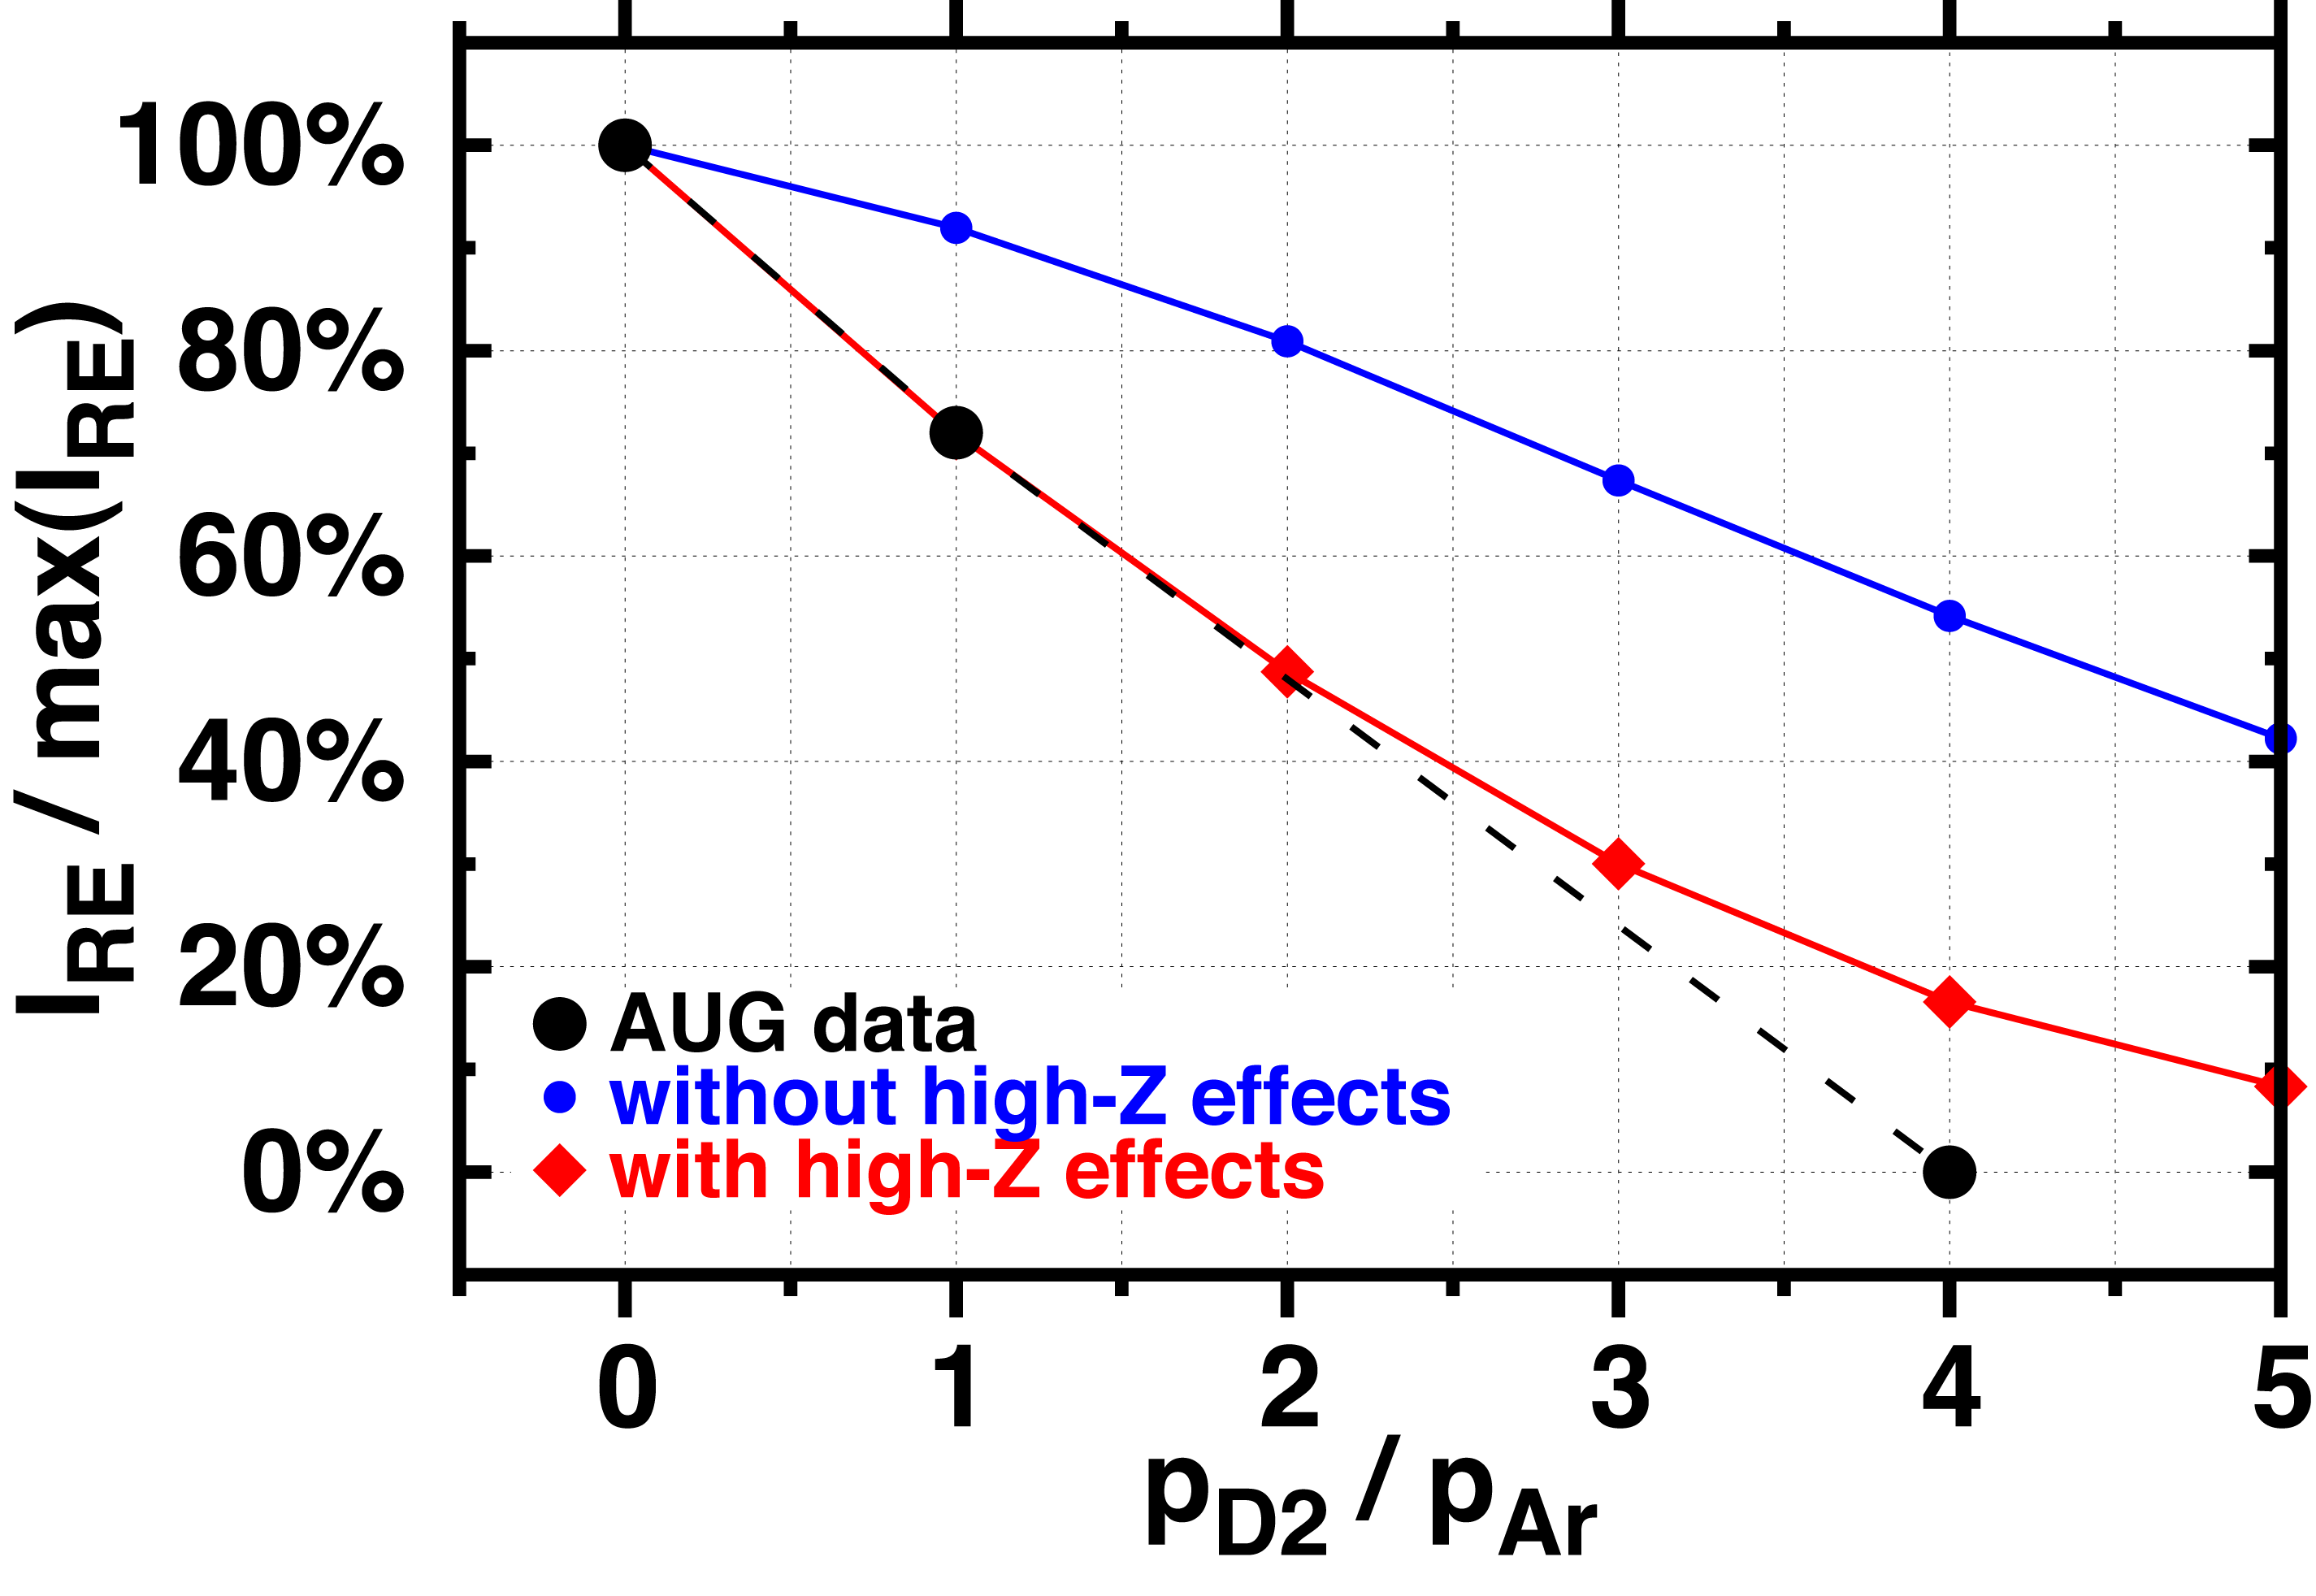 The effect of argon-deuterium mixture injections on RE generation, and comparison with modeling. The argon pressure was kept constant while increasing deuterium pressure in the mixture.